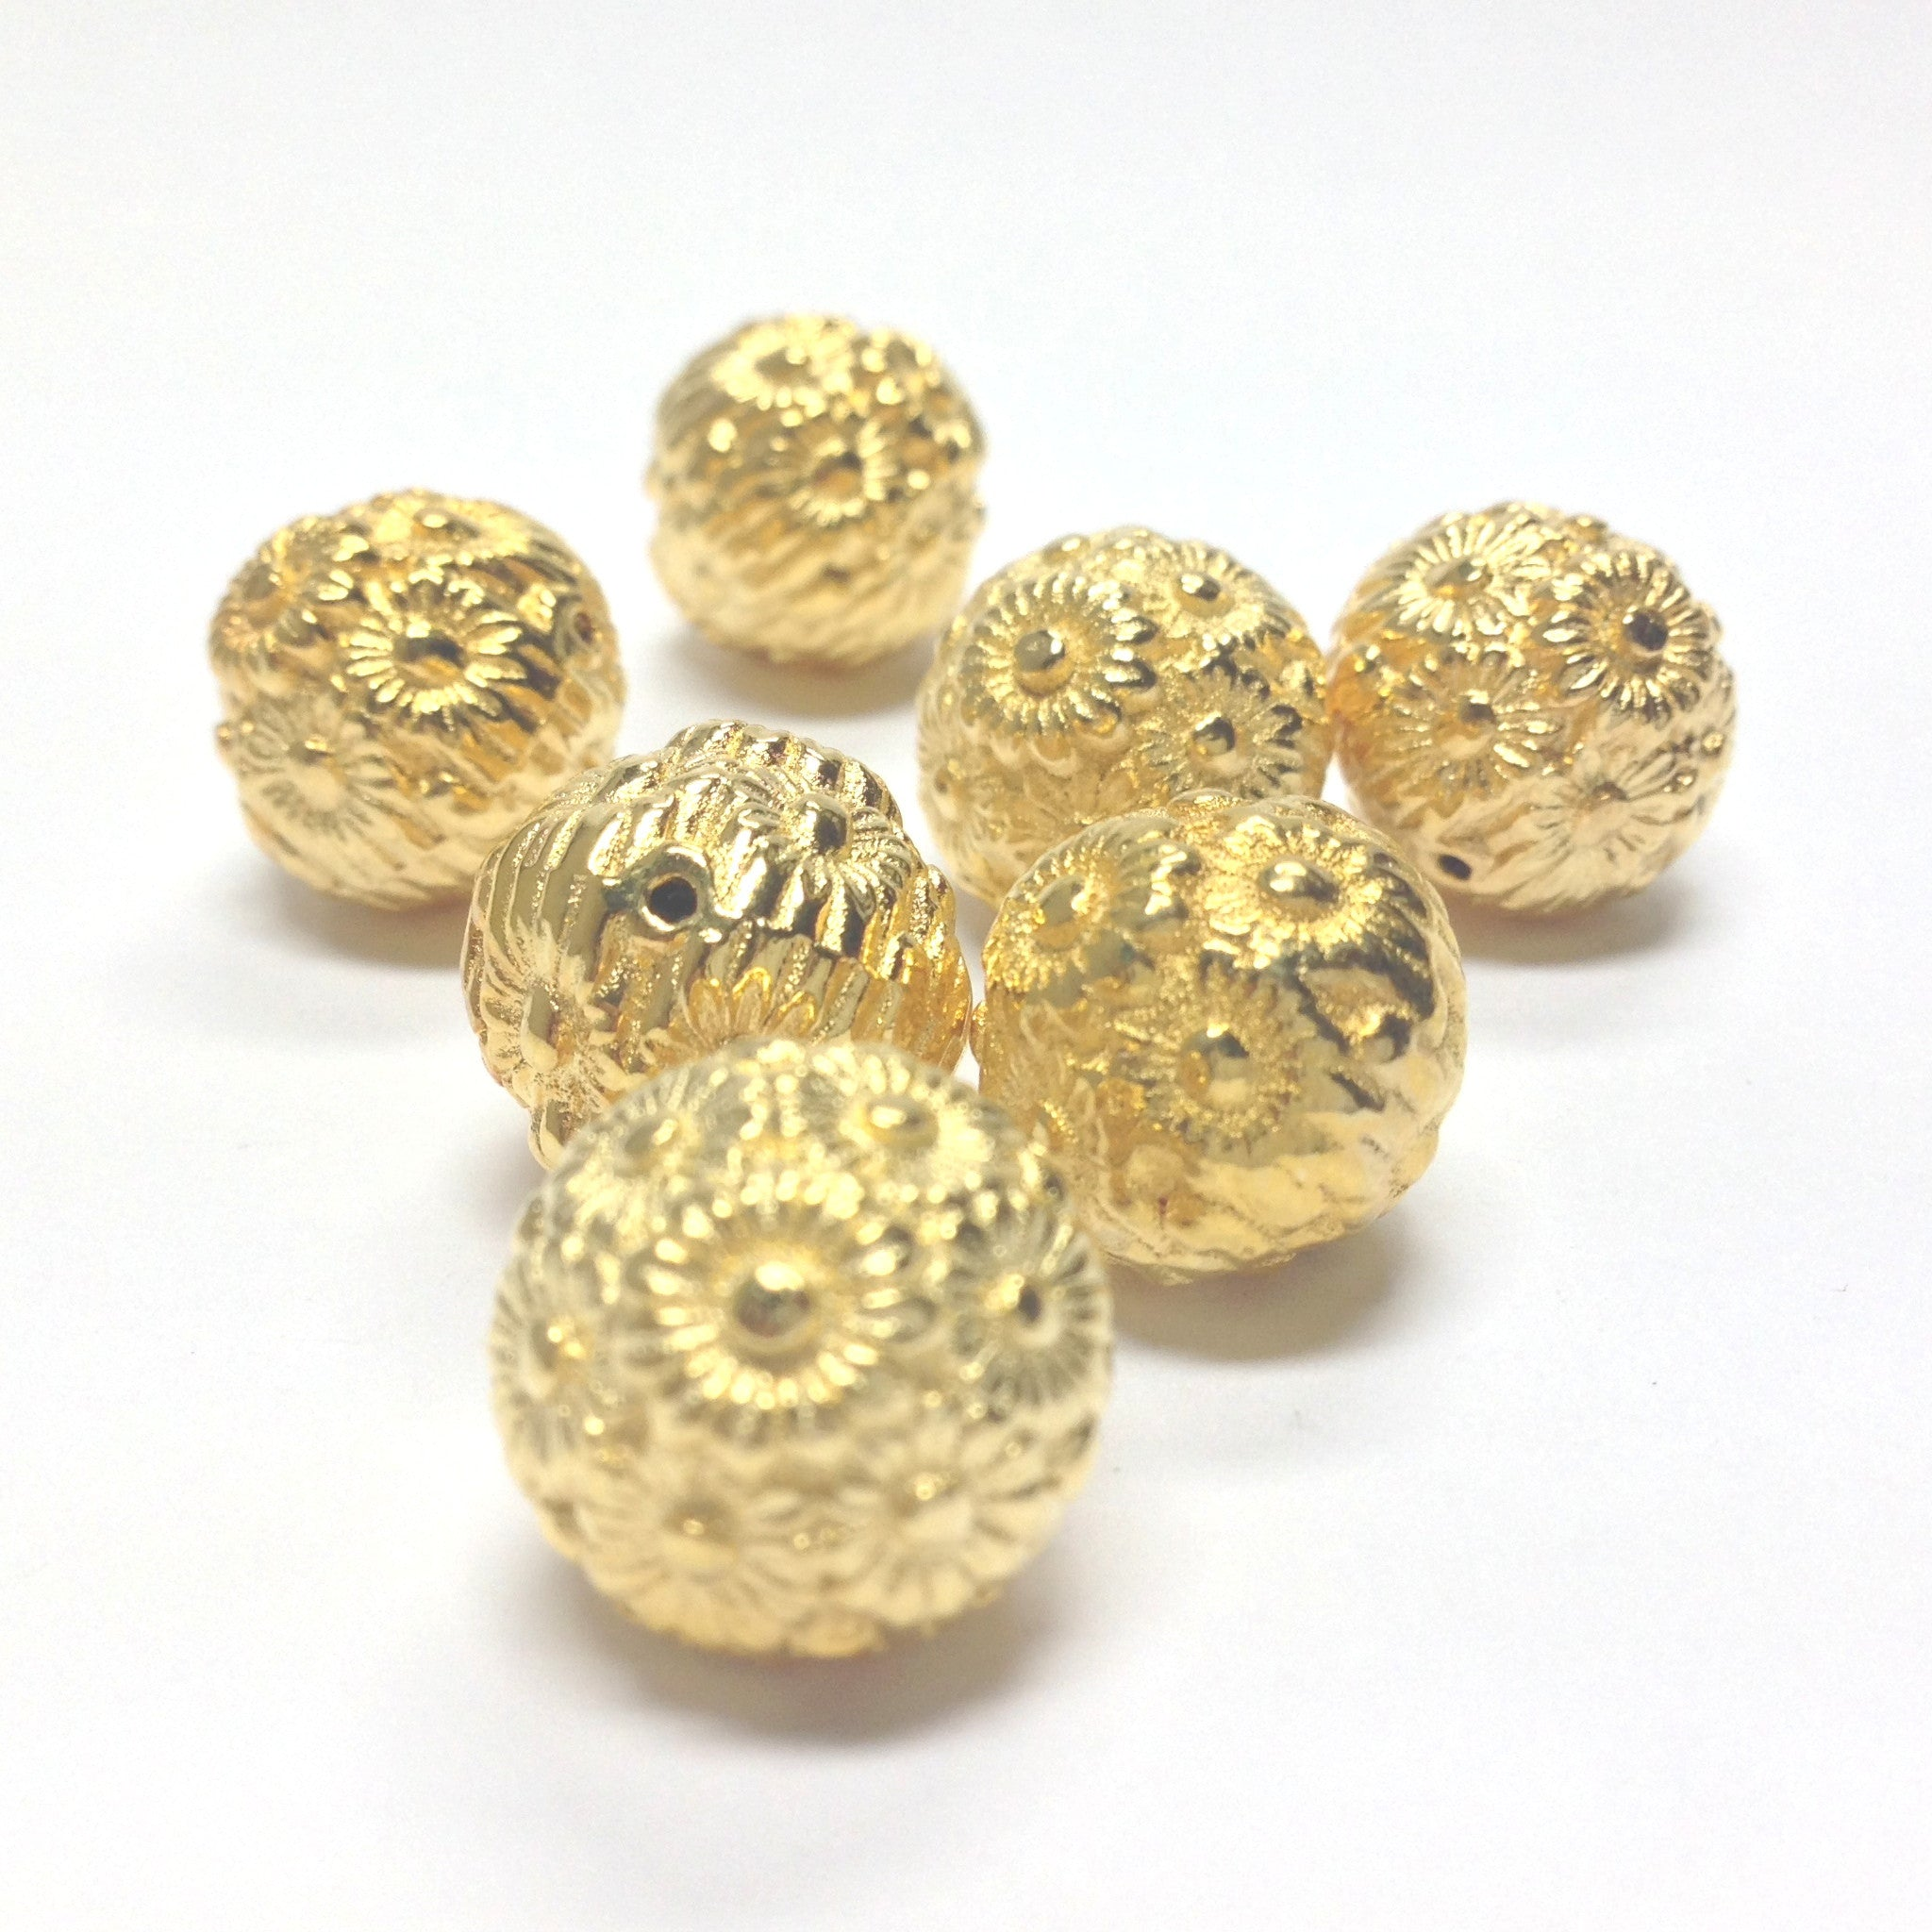 14MM Hamilton Gold Flower Bead (36 pieces)